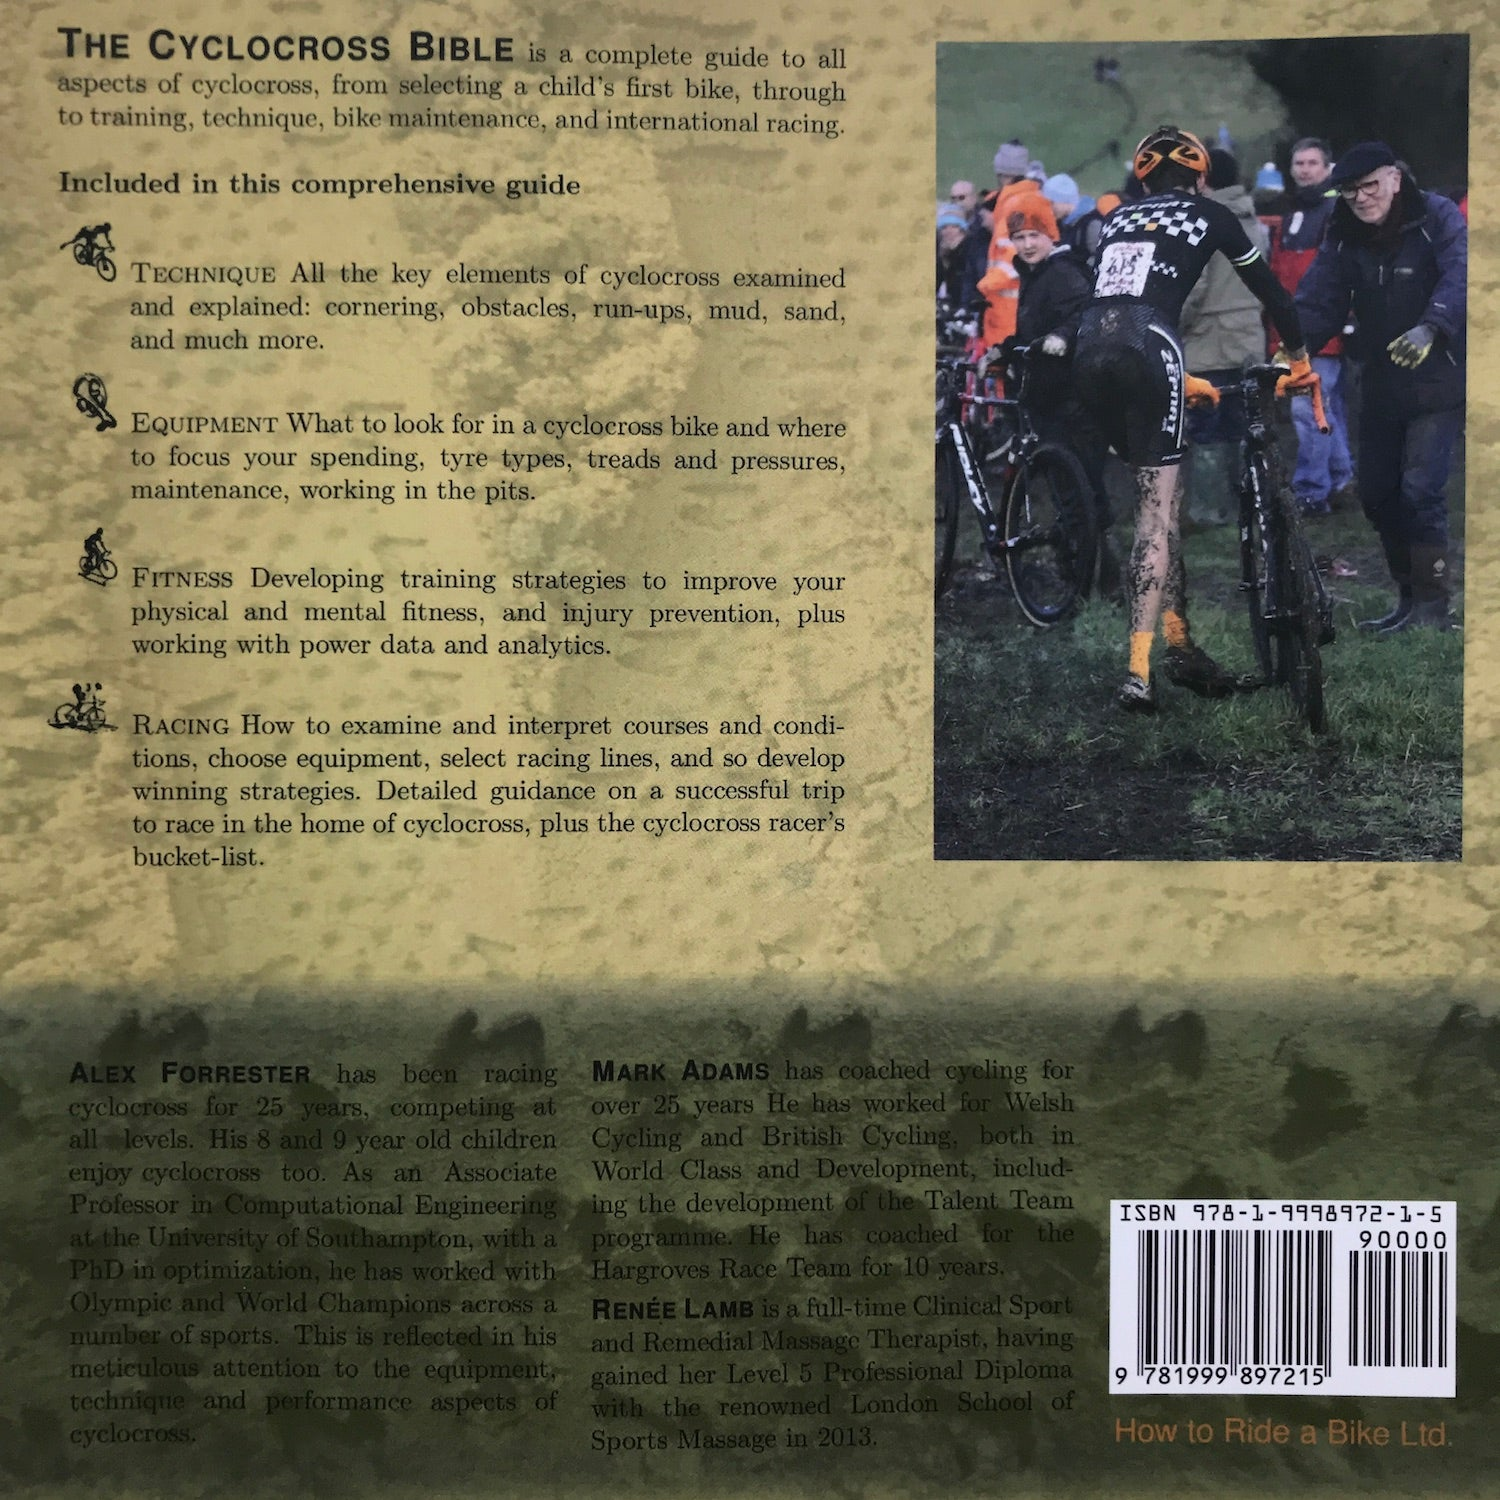 THE CYCLOCROSS BIBLE